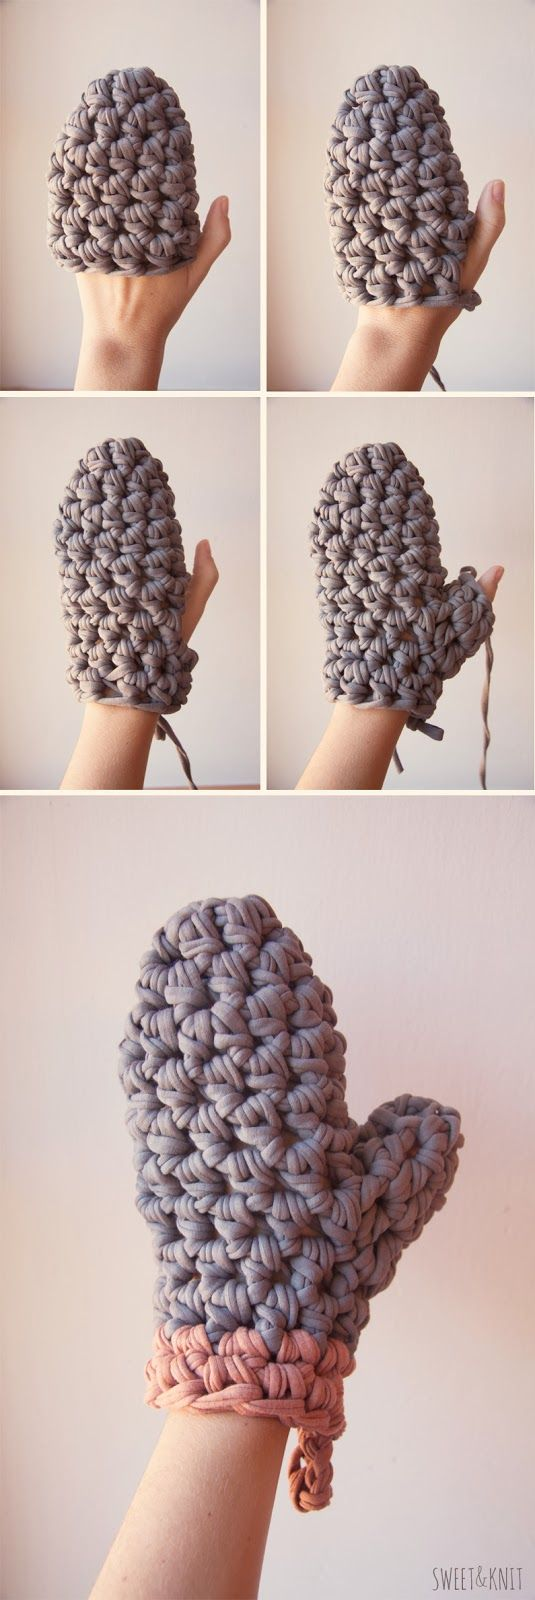 Crochet Xxl Patterns : 134 best images about Trapillo on Pinterest